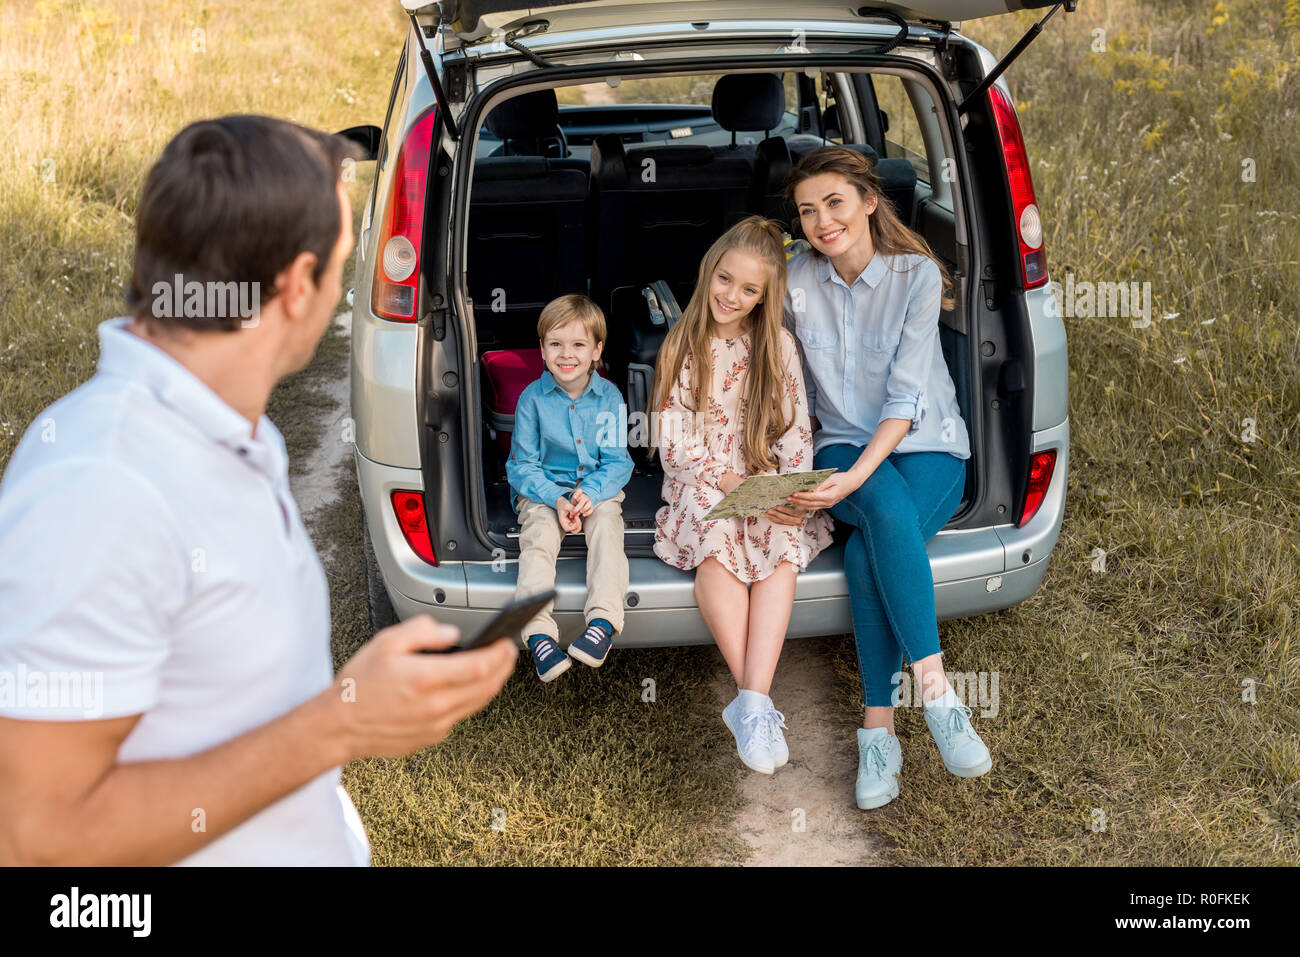 man using smartphone while his family sitting in car trunk in field - Stock Image